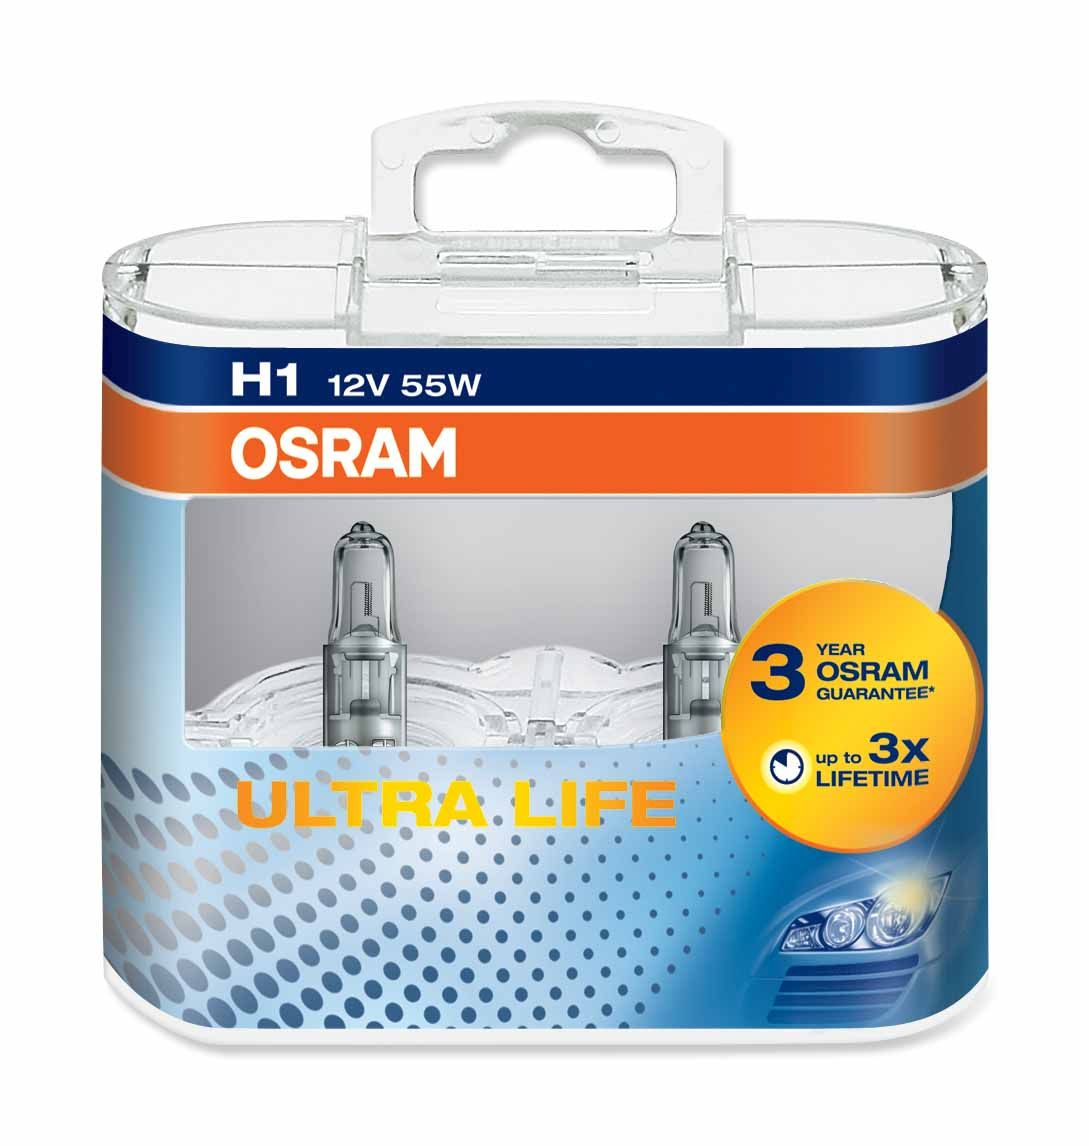 osram h1 ultra life halogen lampen 64150ult online g nstig kaufen. Black Bedroom Furniture Sets. Home Design Ideas